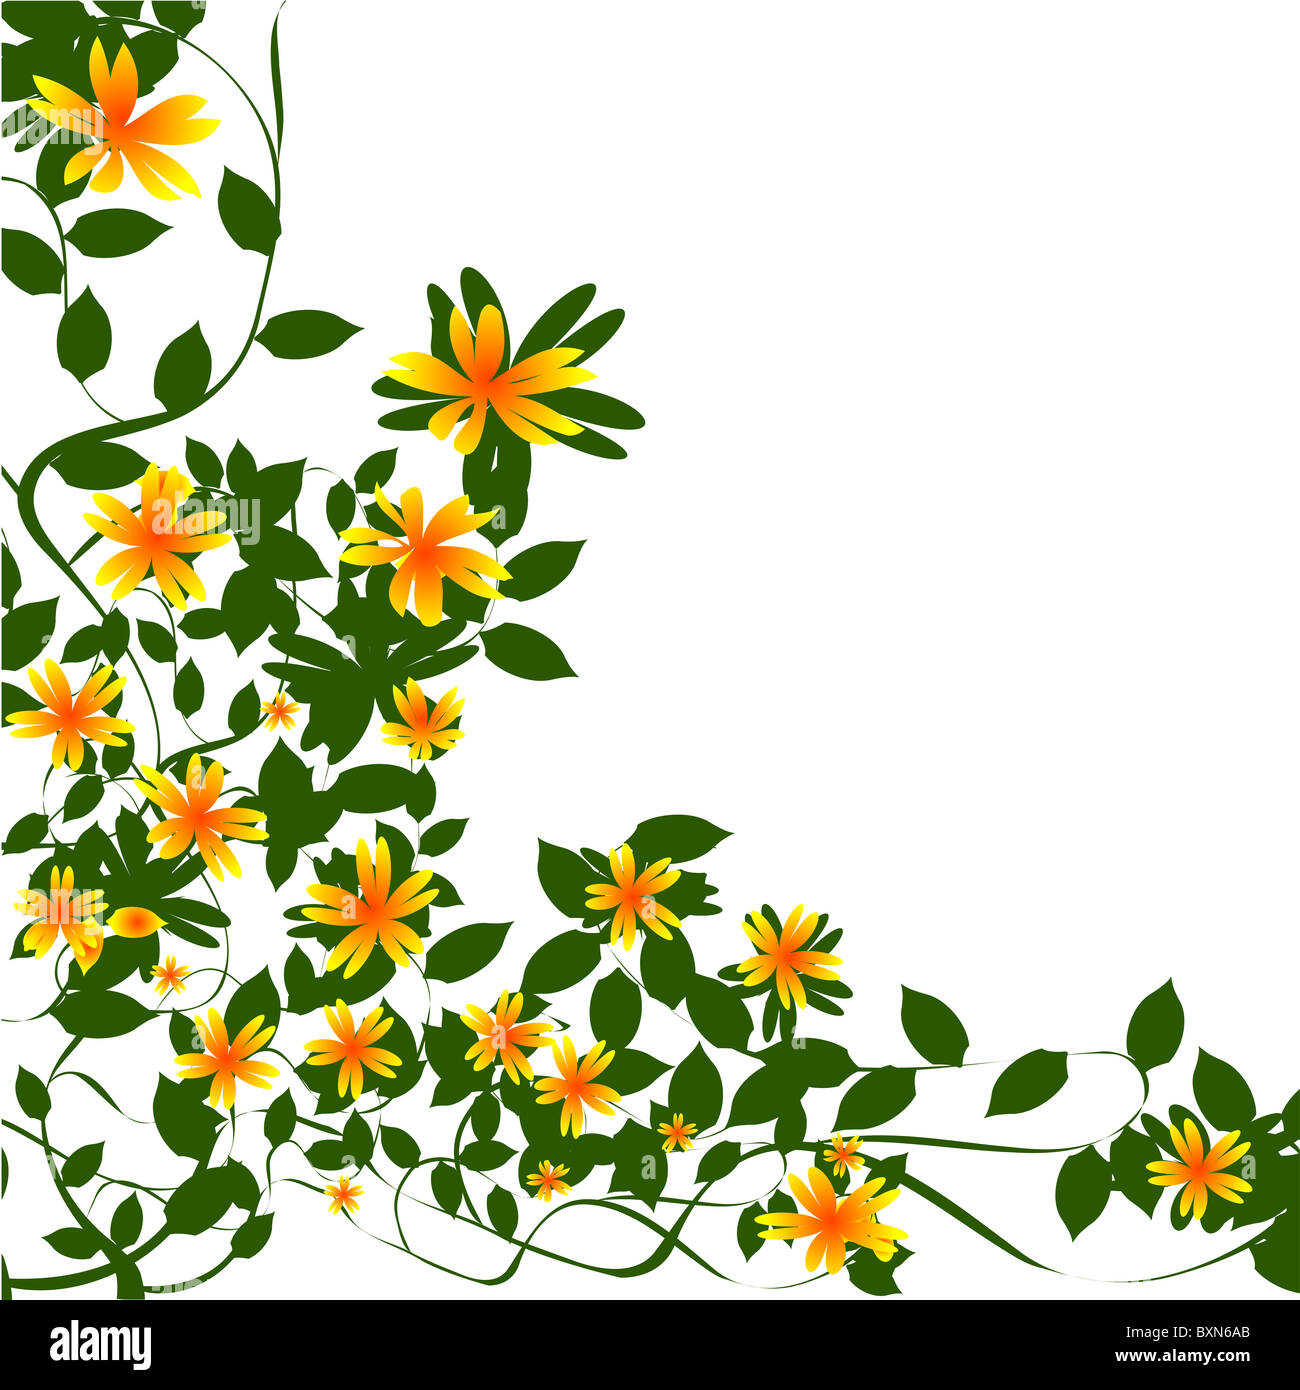 Border floral - Stock Image